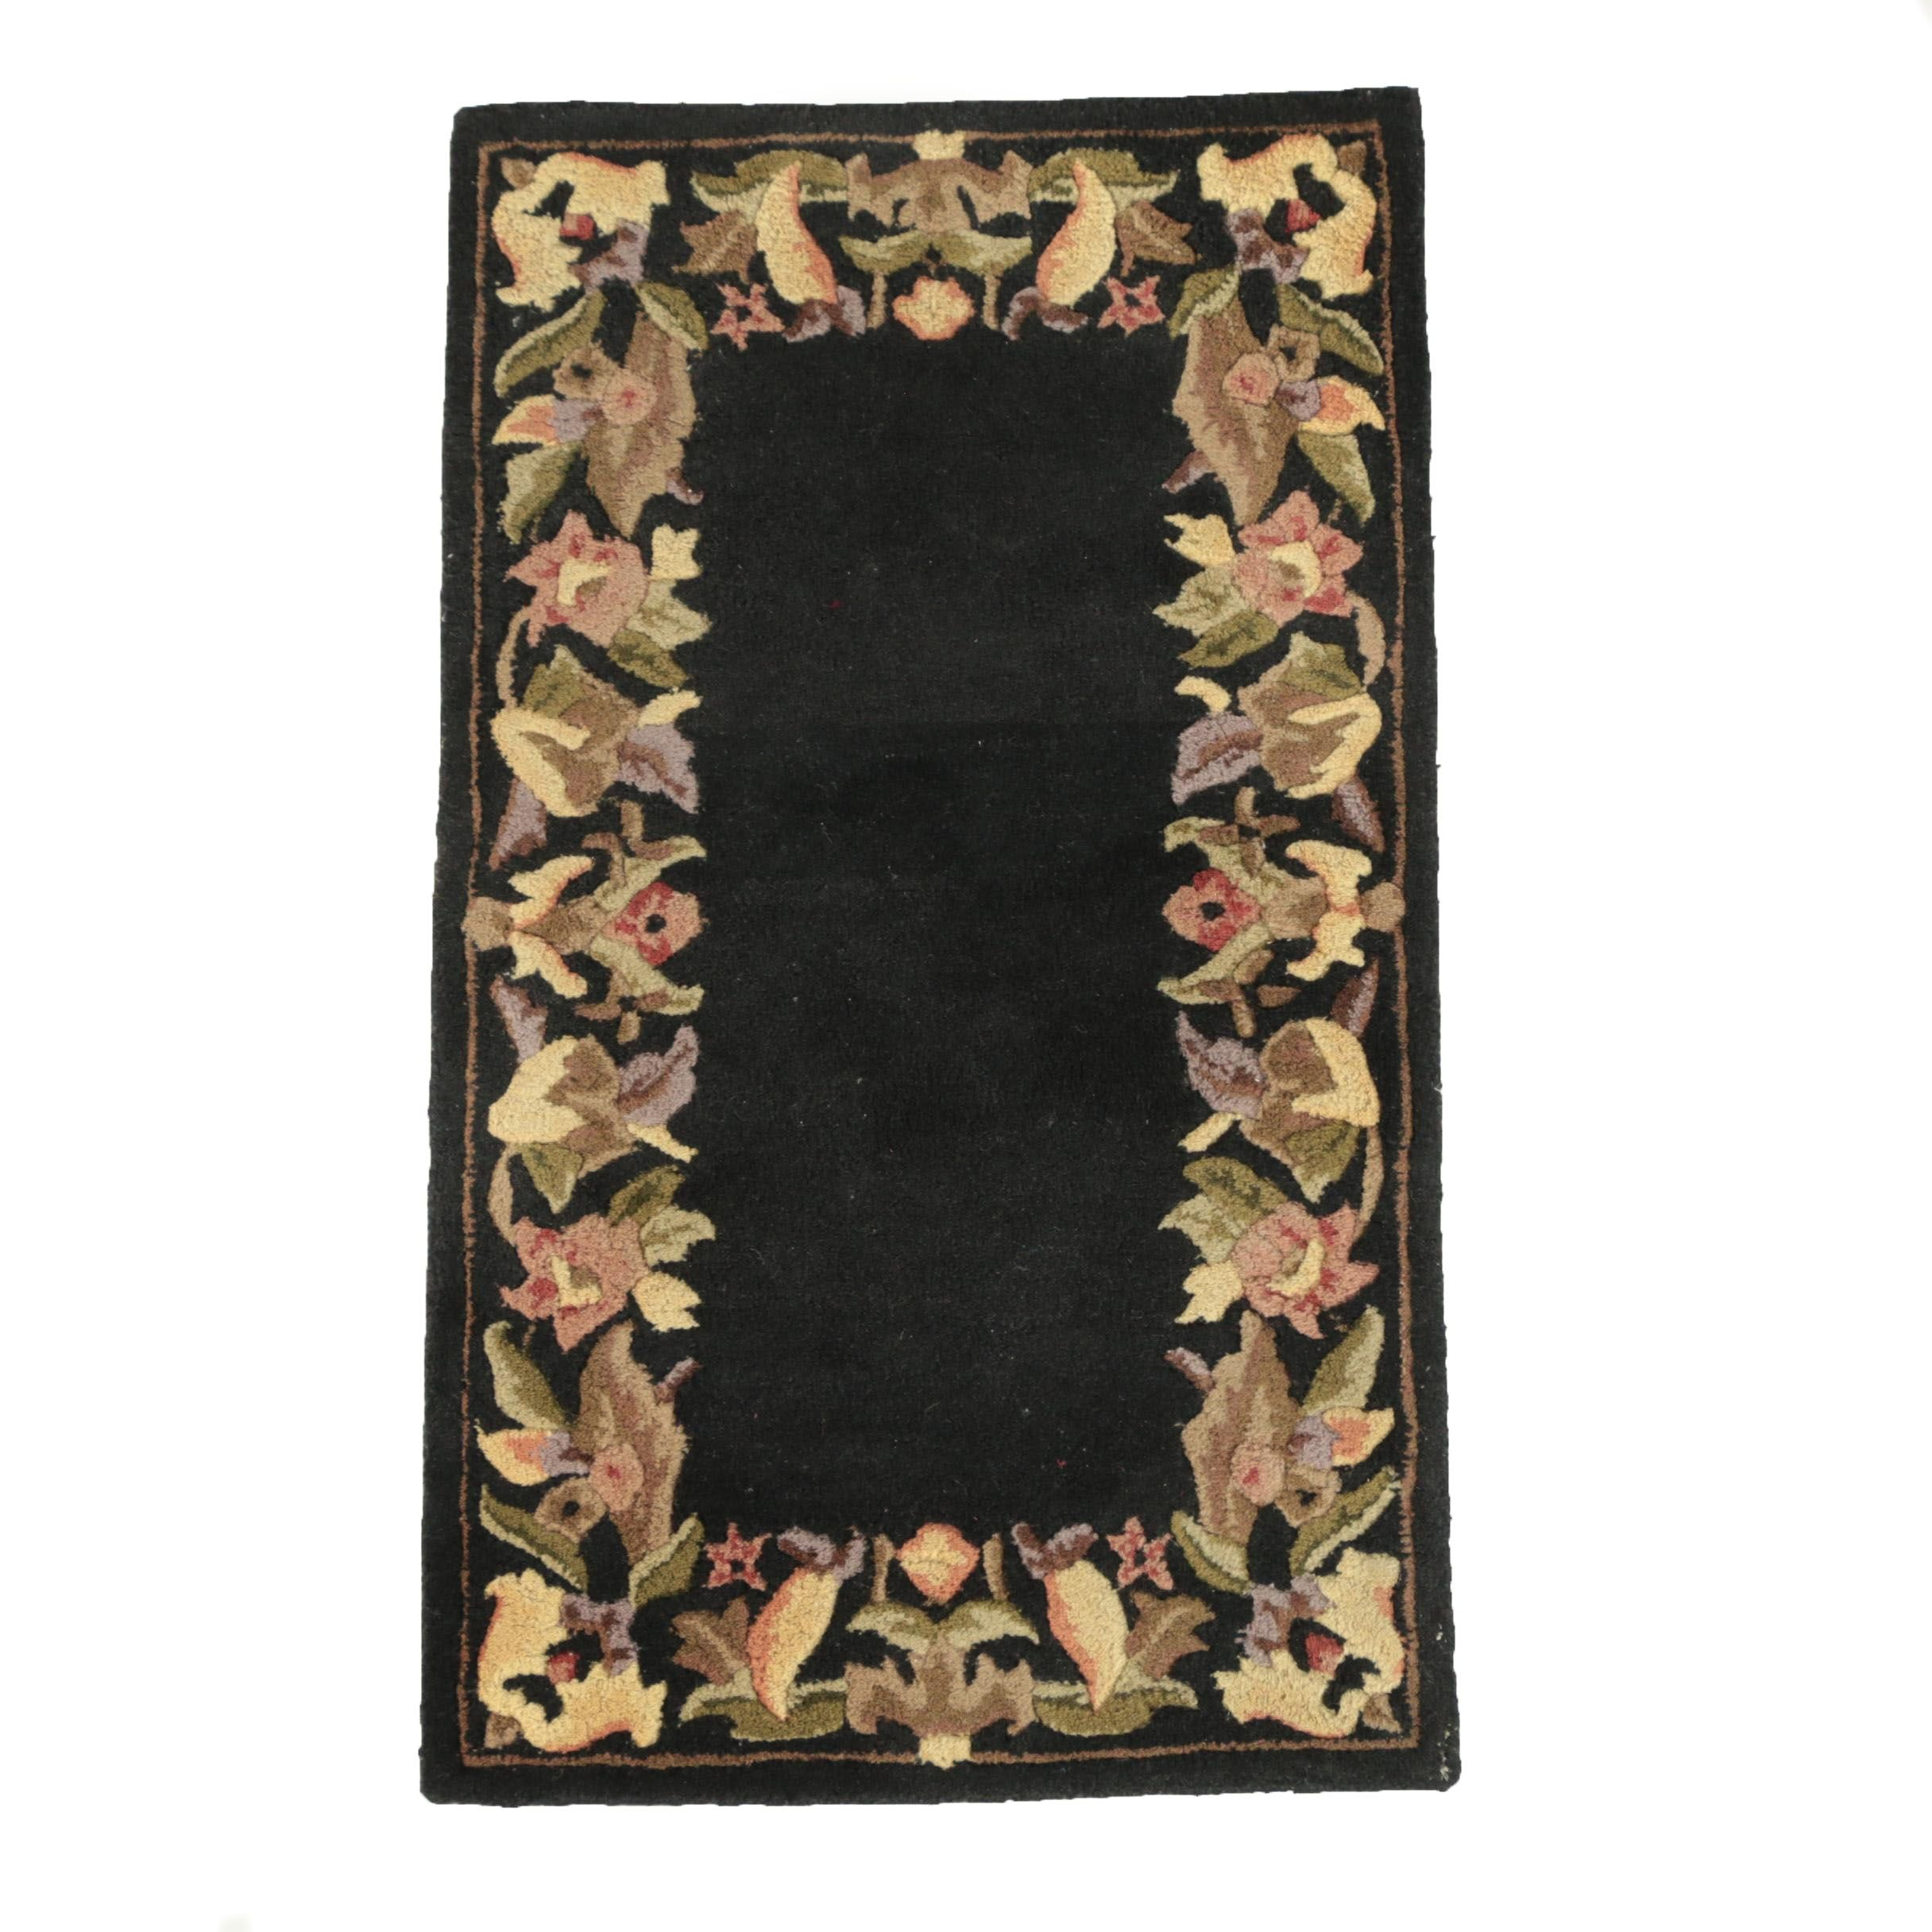 Hand-Tufted Floral and Foliate Themed Carved Wool Rug